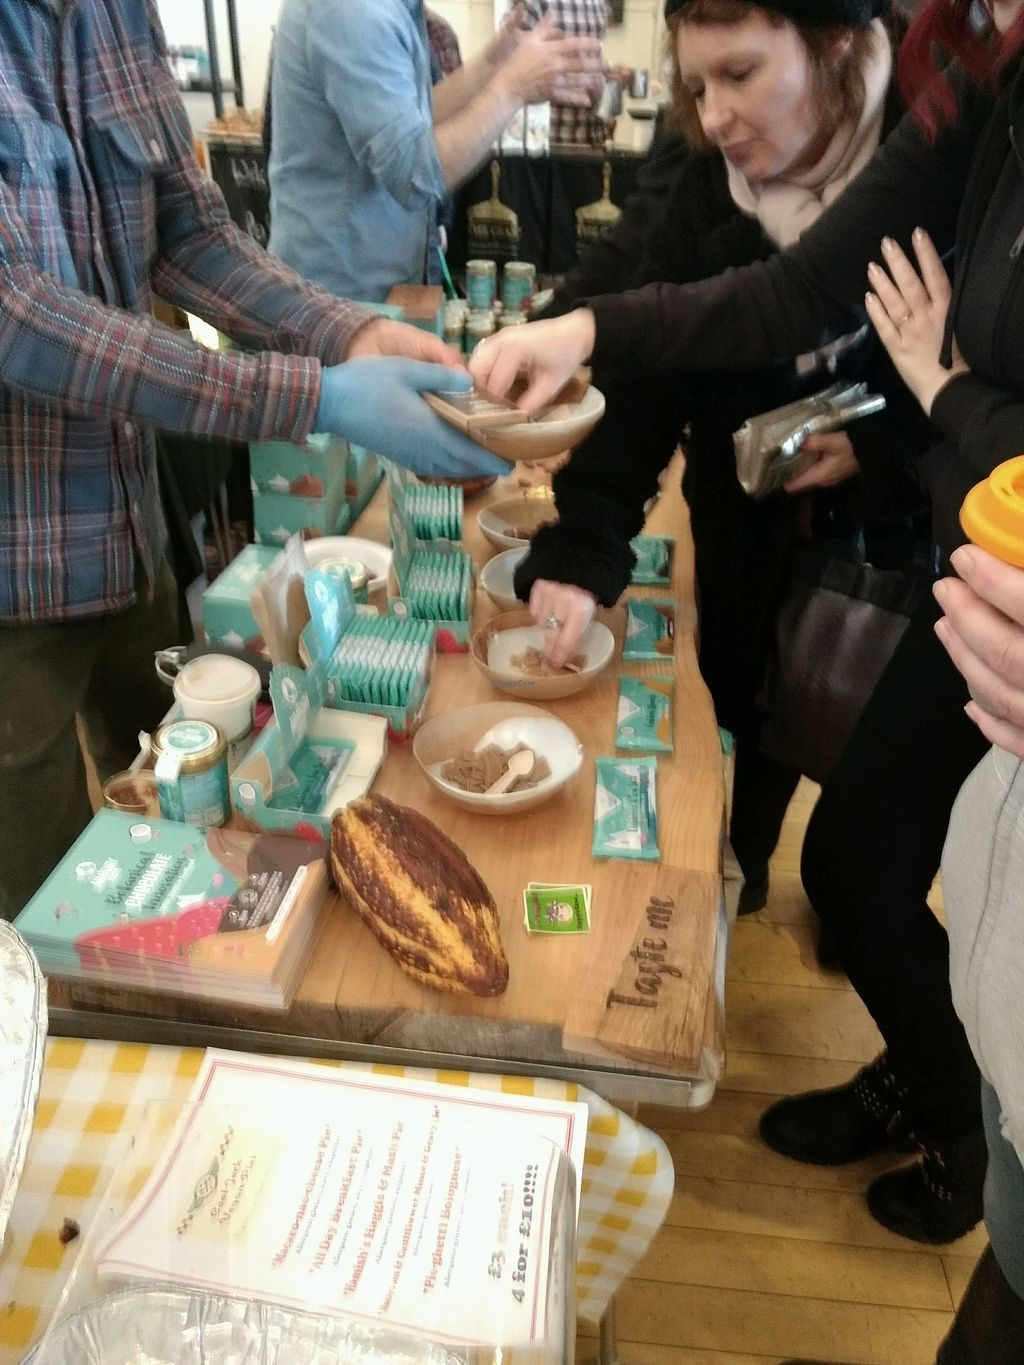 """Photo of Almighty Foods  by <a href=""""/members/profile/craigmc"""">craigmc</a> <br/>love vegan Festival <br/> March 18, 2018  - <a href='/contact/abuse/image/81317/372572'>Report</a>"""